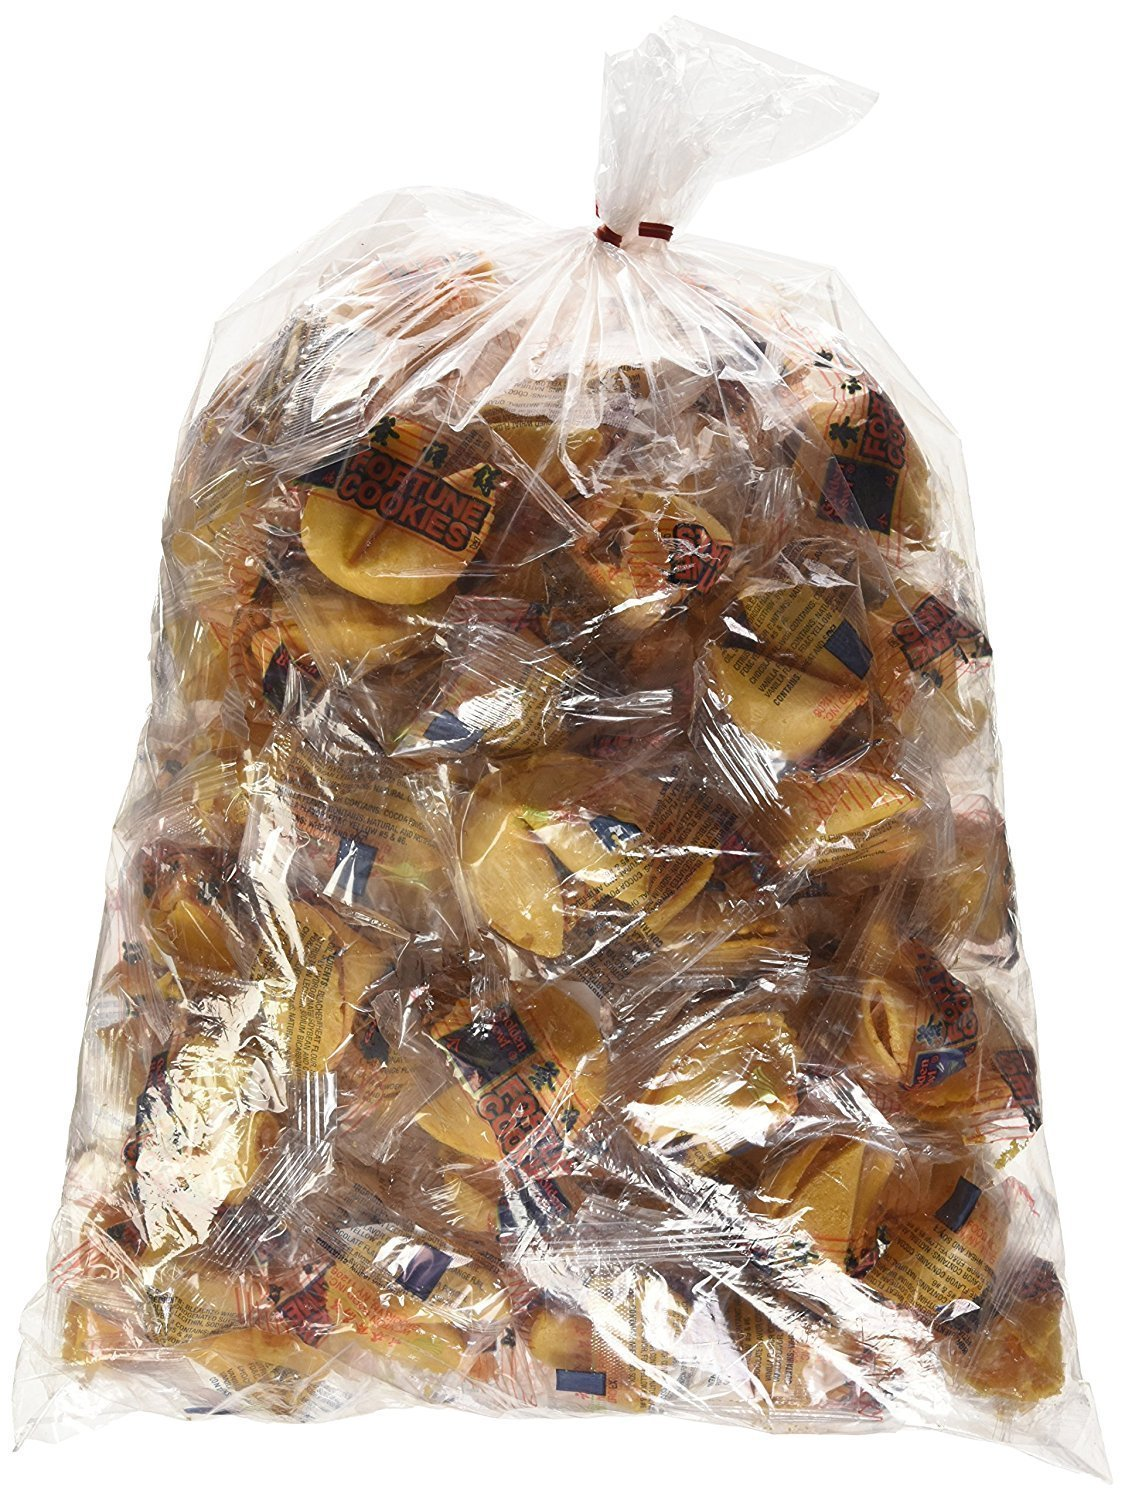 2.5 Pound Super Size Bag of Fortune Cookies - 40 ounces of Fortune Cookie Goodness